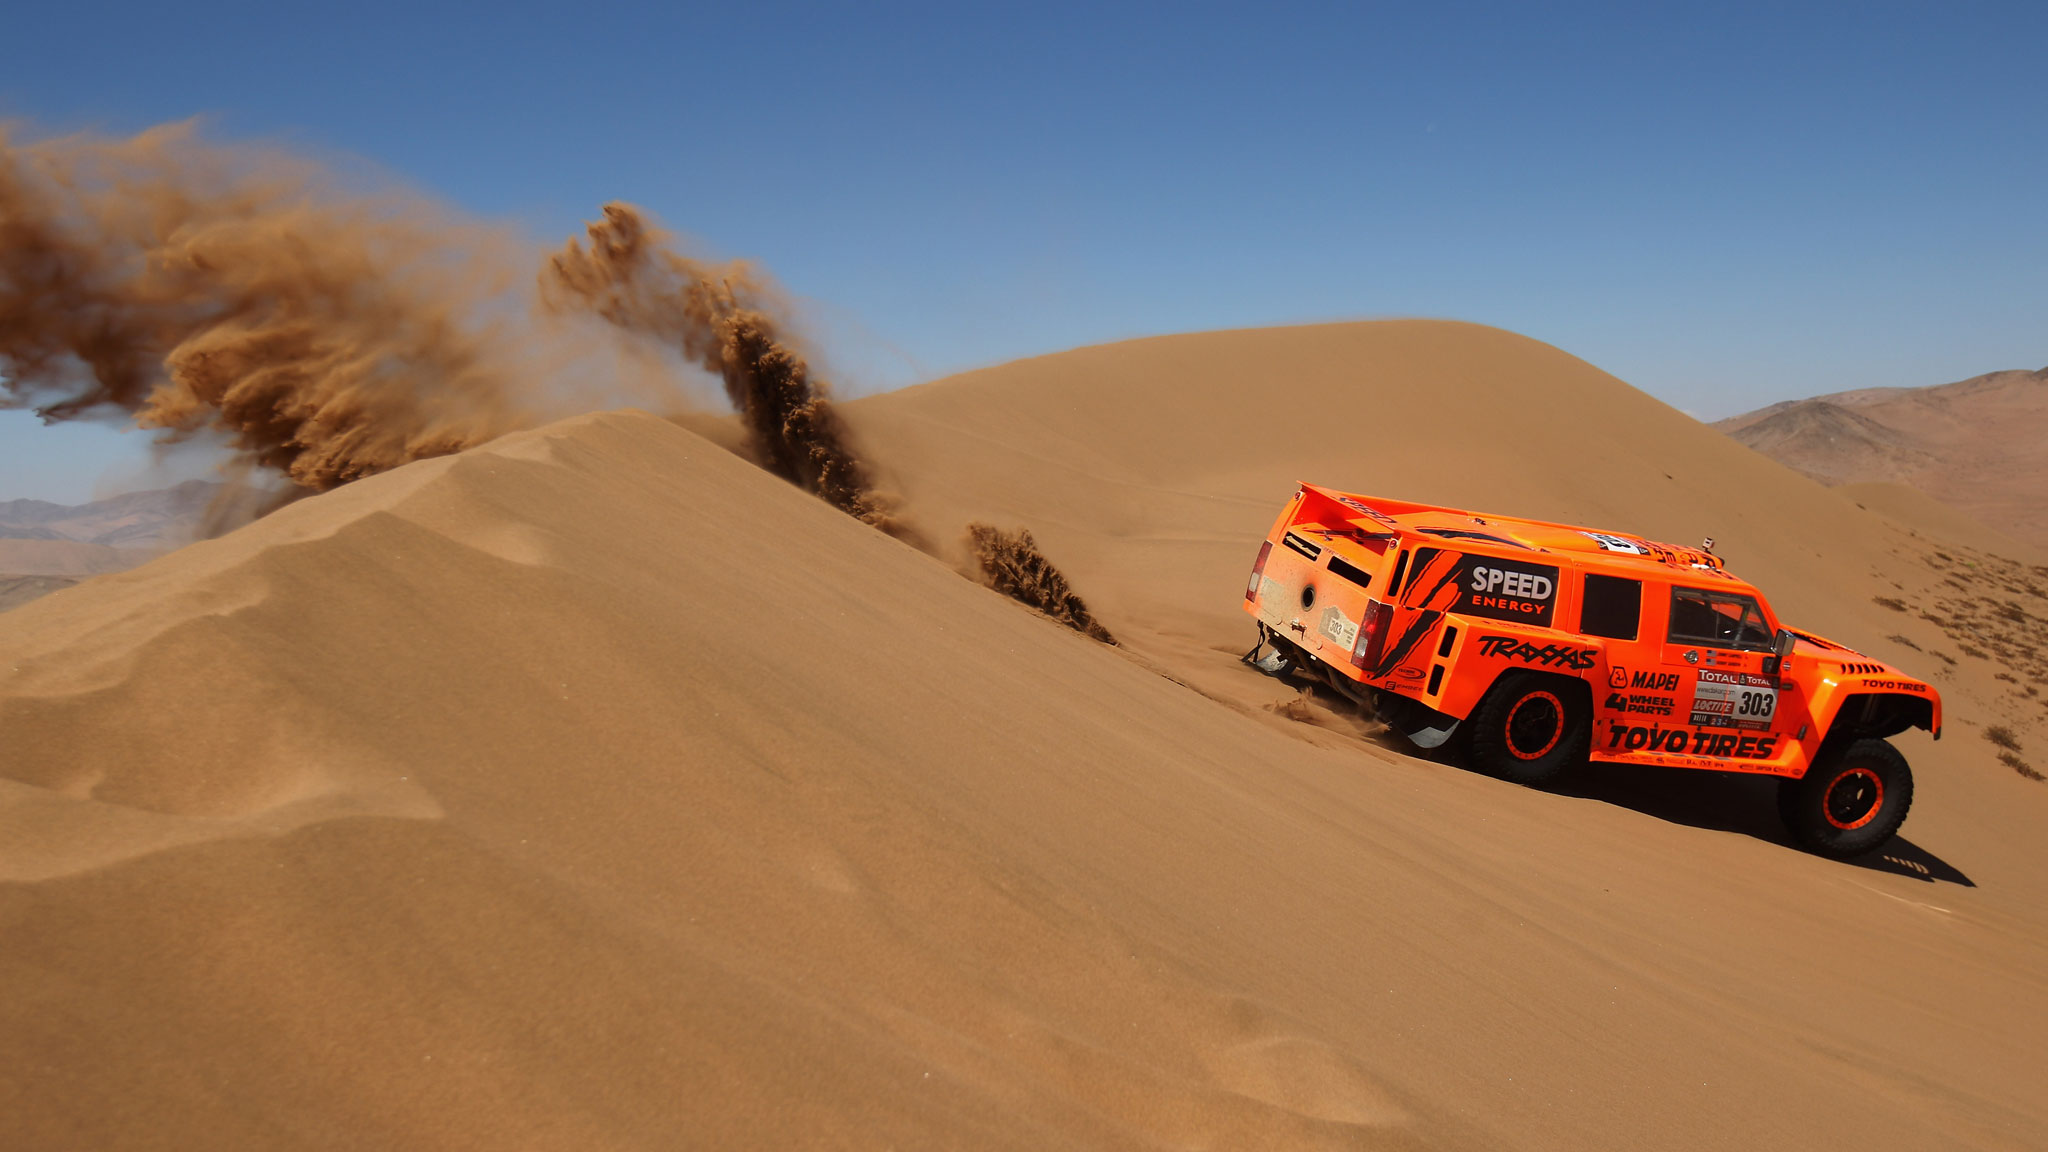 Gordon, racing during Stage 7 of the 2012 Dakar Rally in Copiapo, Chile. He was eventually disqualified from the race for an illegal modification to his engine.